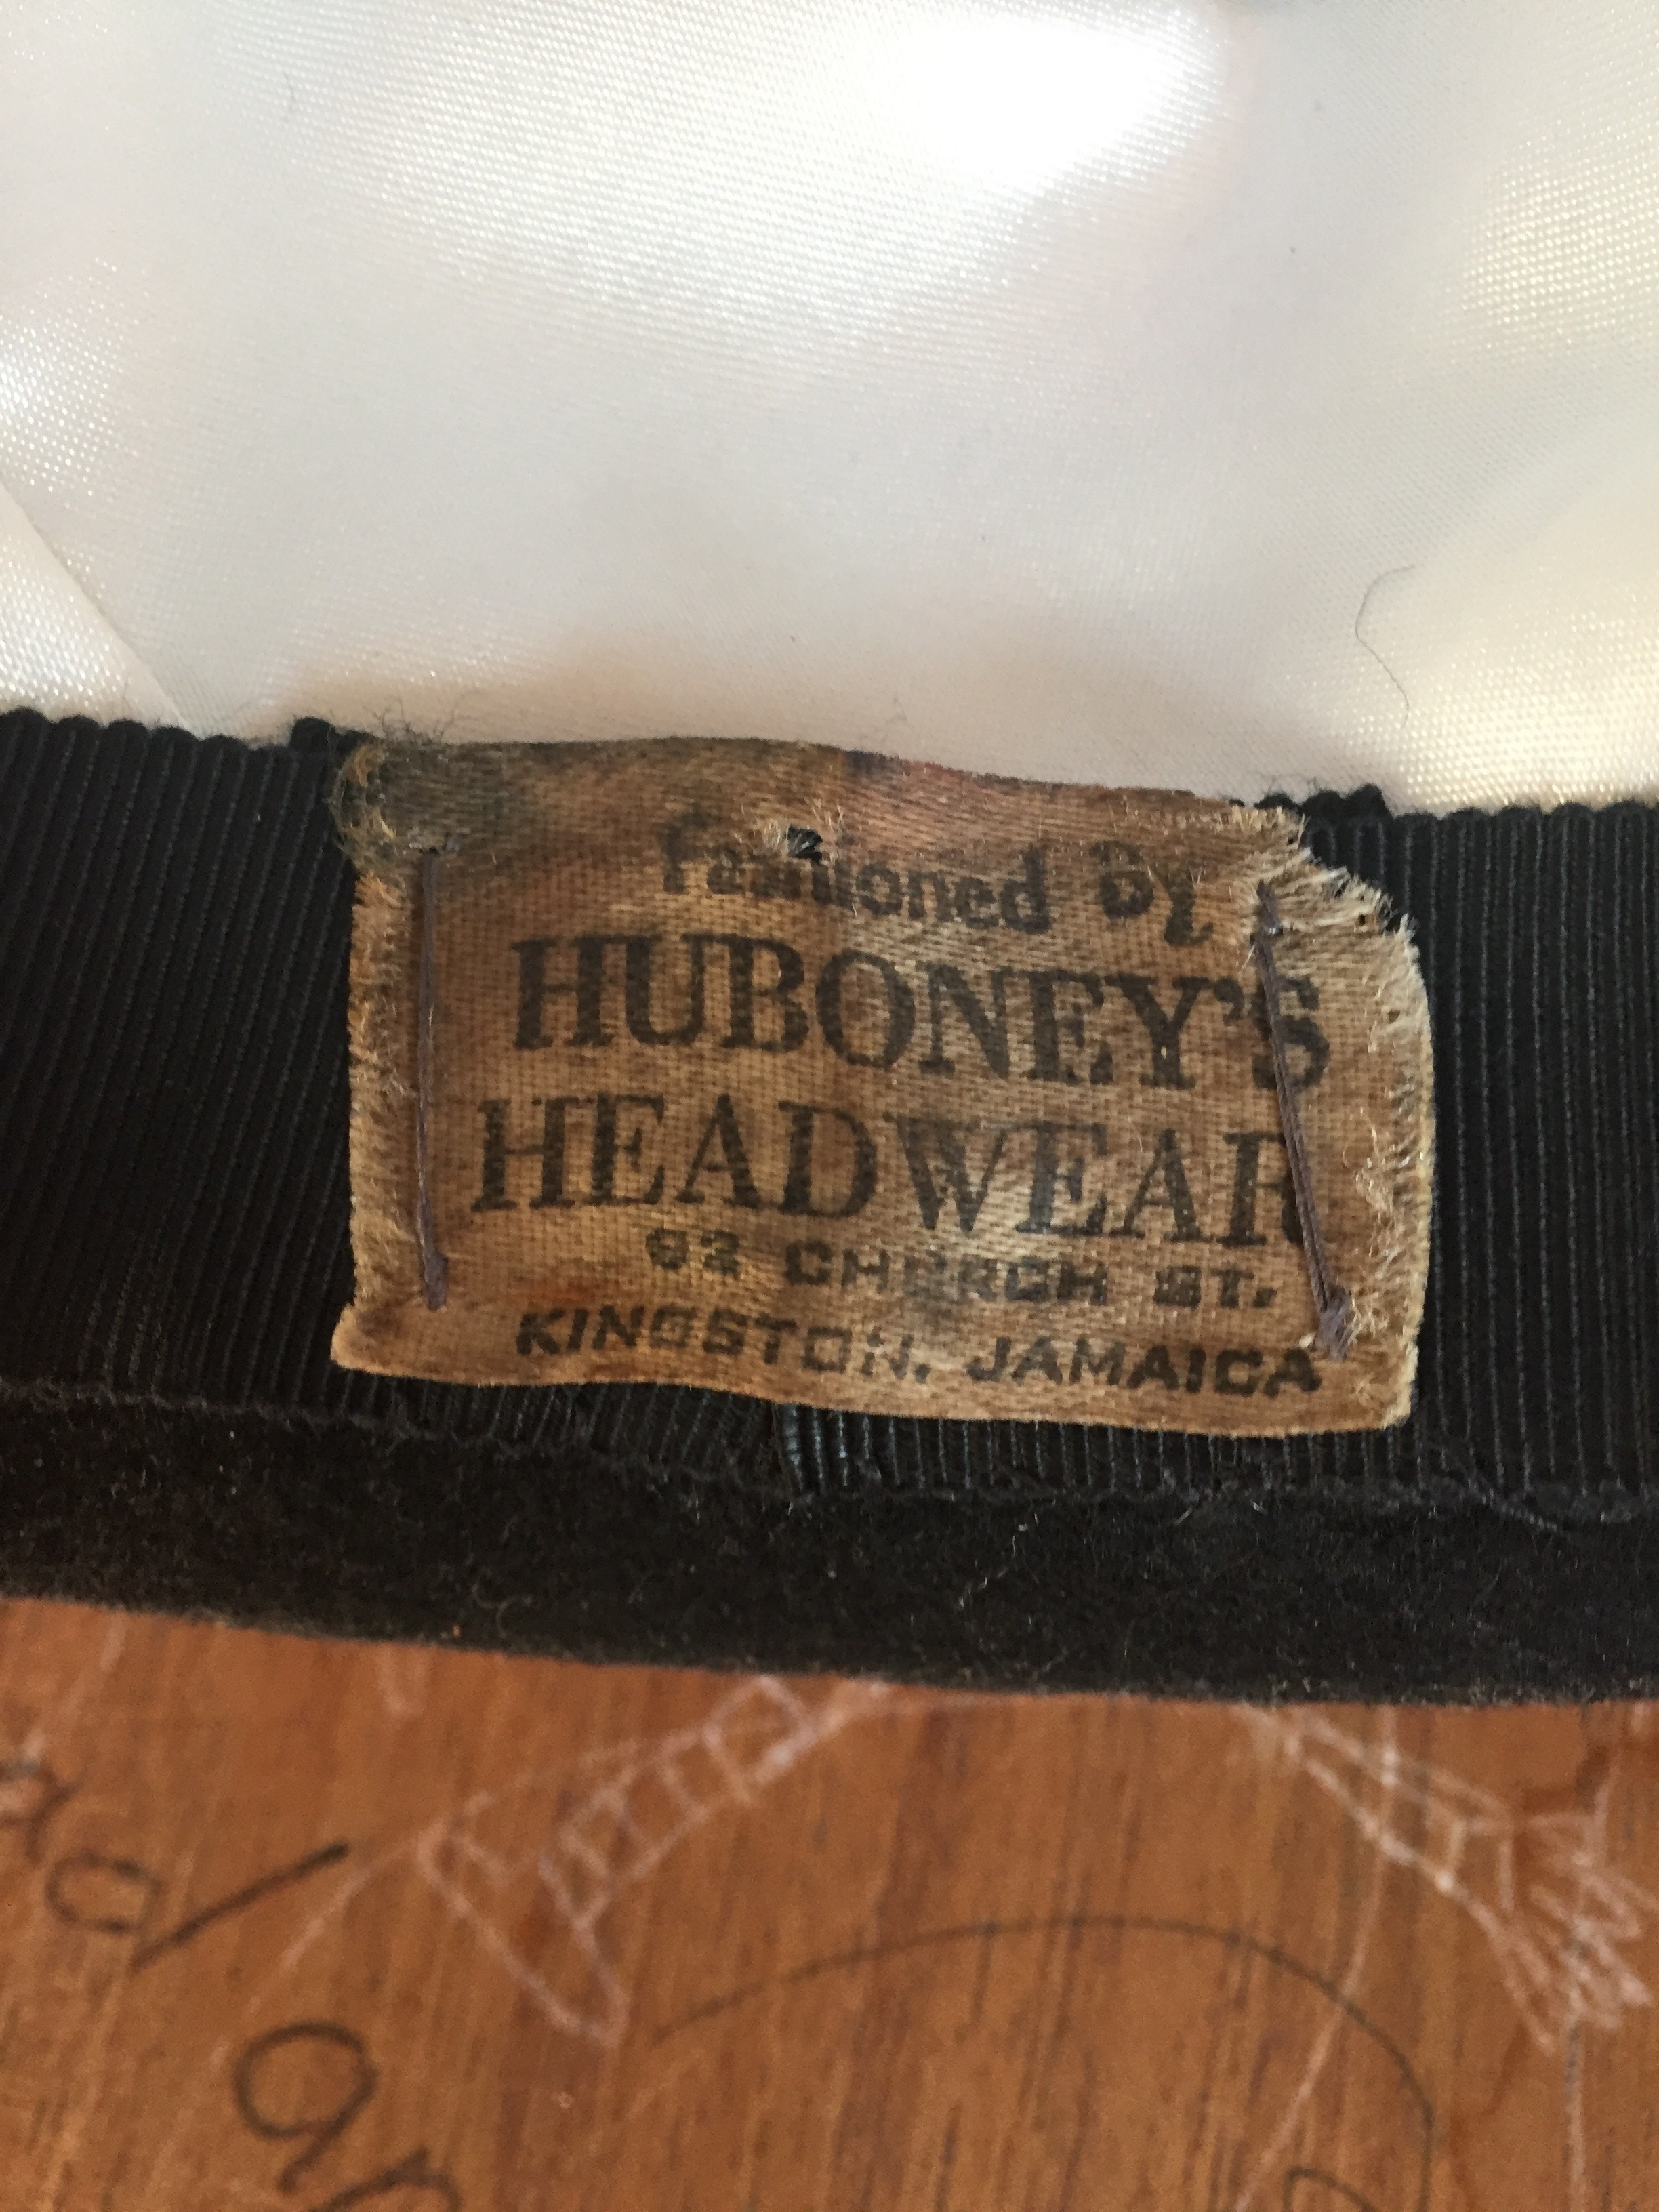 Huboneys Headgear. 92 Church St. Kingston. Jamaica. Still there, I am led to believe.